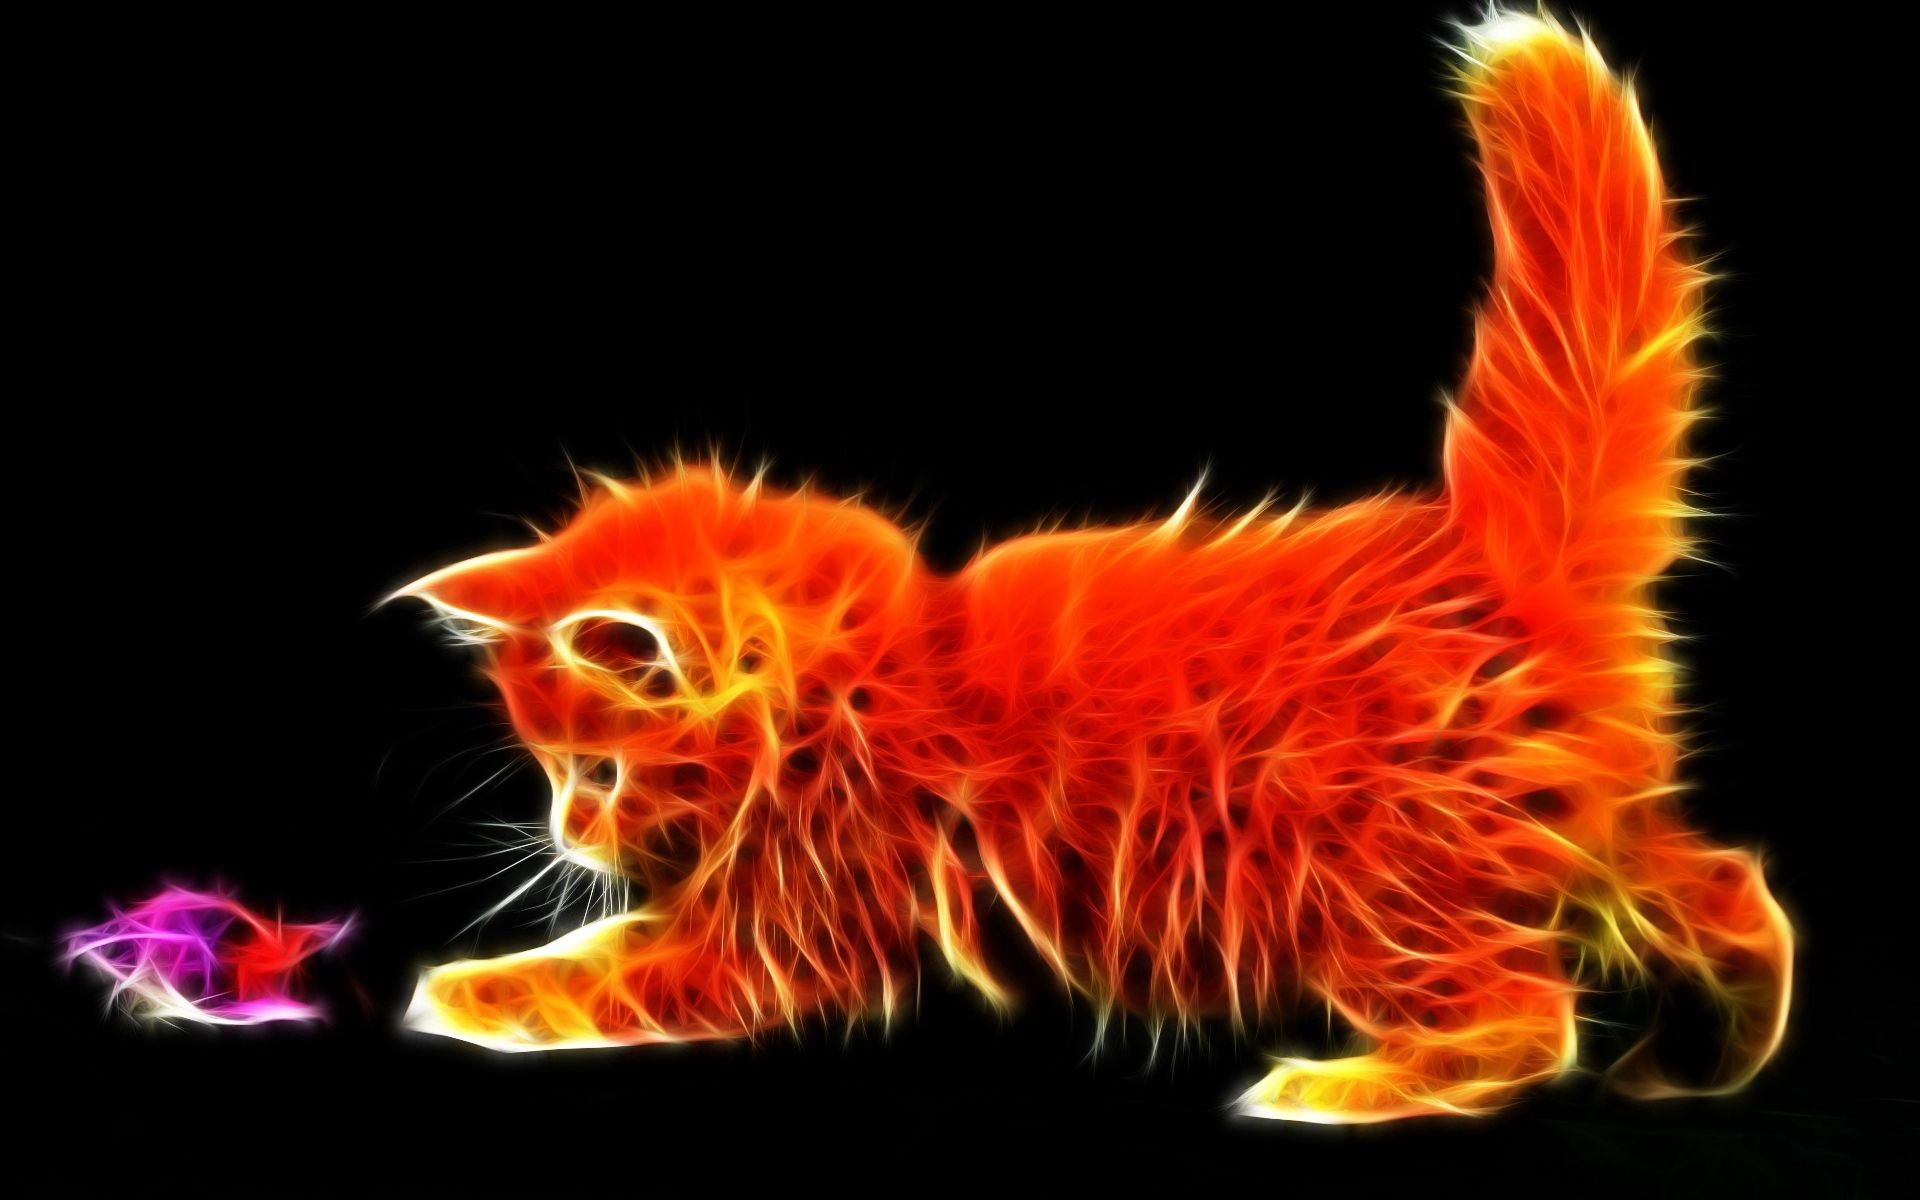 60692 download wallpaper Abstract, Fluffy, Kitty, Kitten, Toy, Playful screensavers and pictures for free